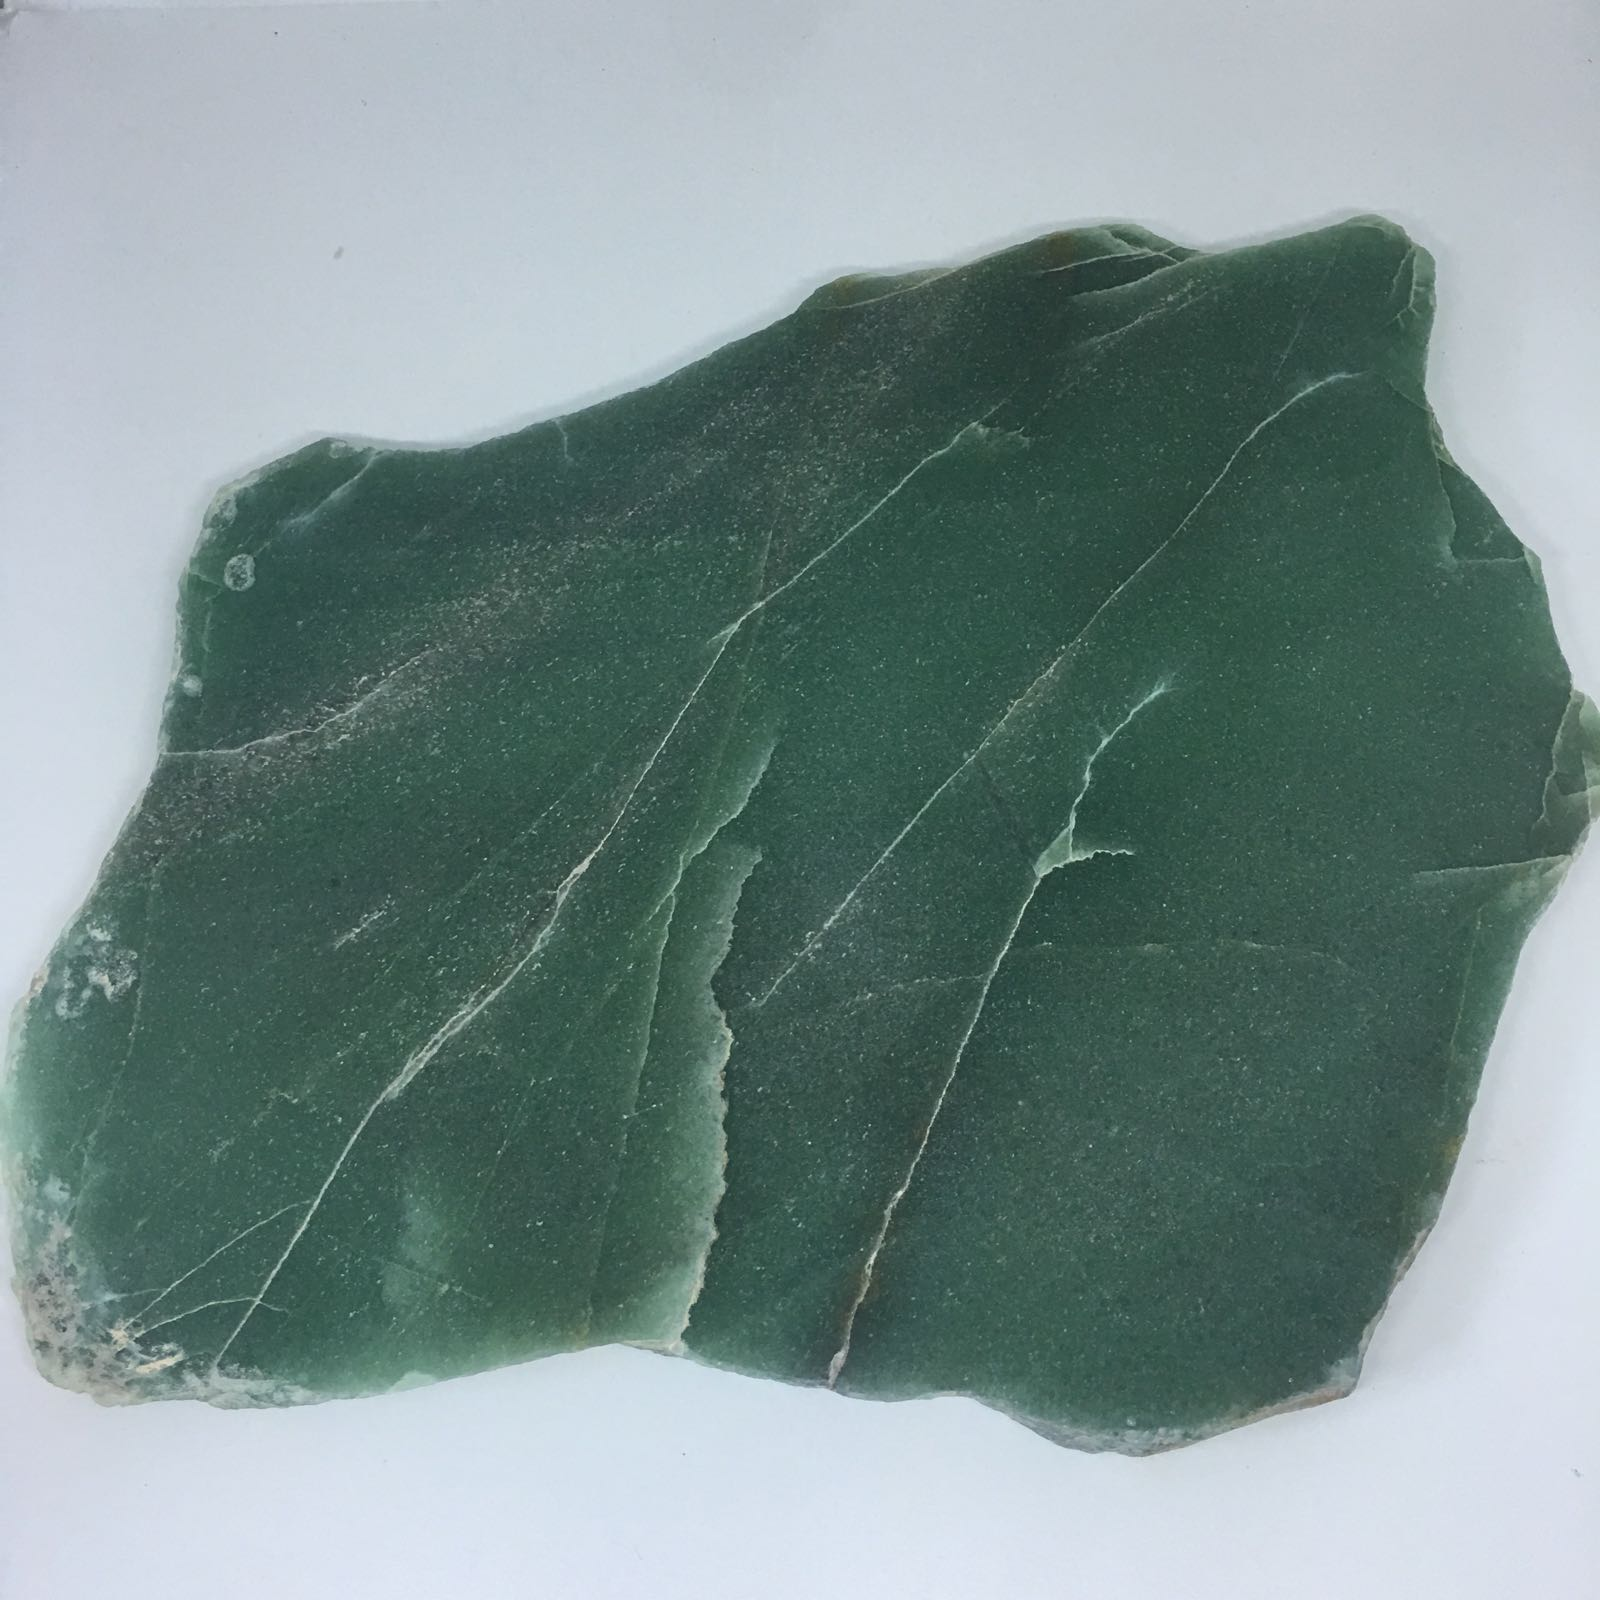 Stones from Uruguay - Green Quartz  Platter  for  Trivet or Table Centerpiece, Size from 23 to 30cm